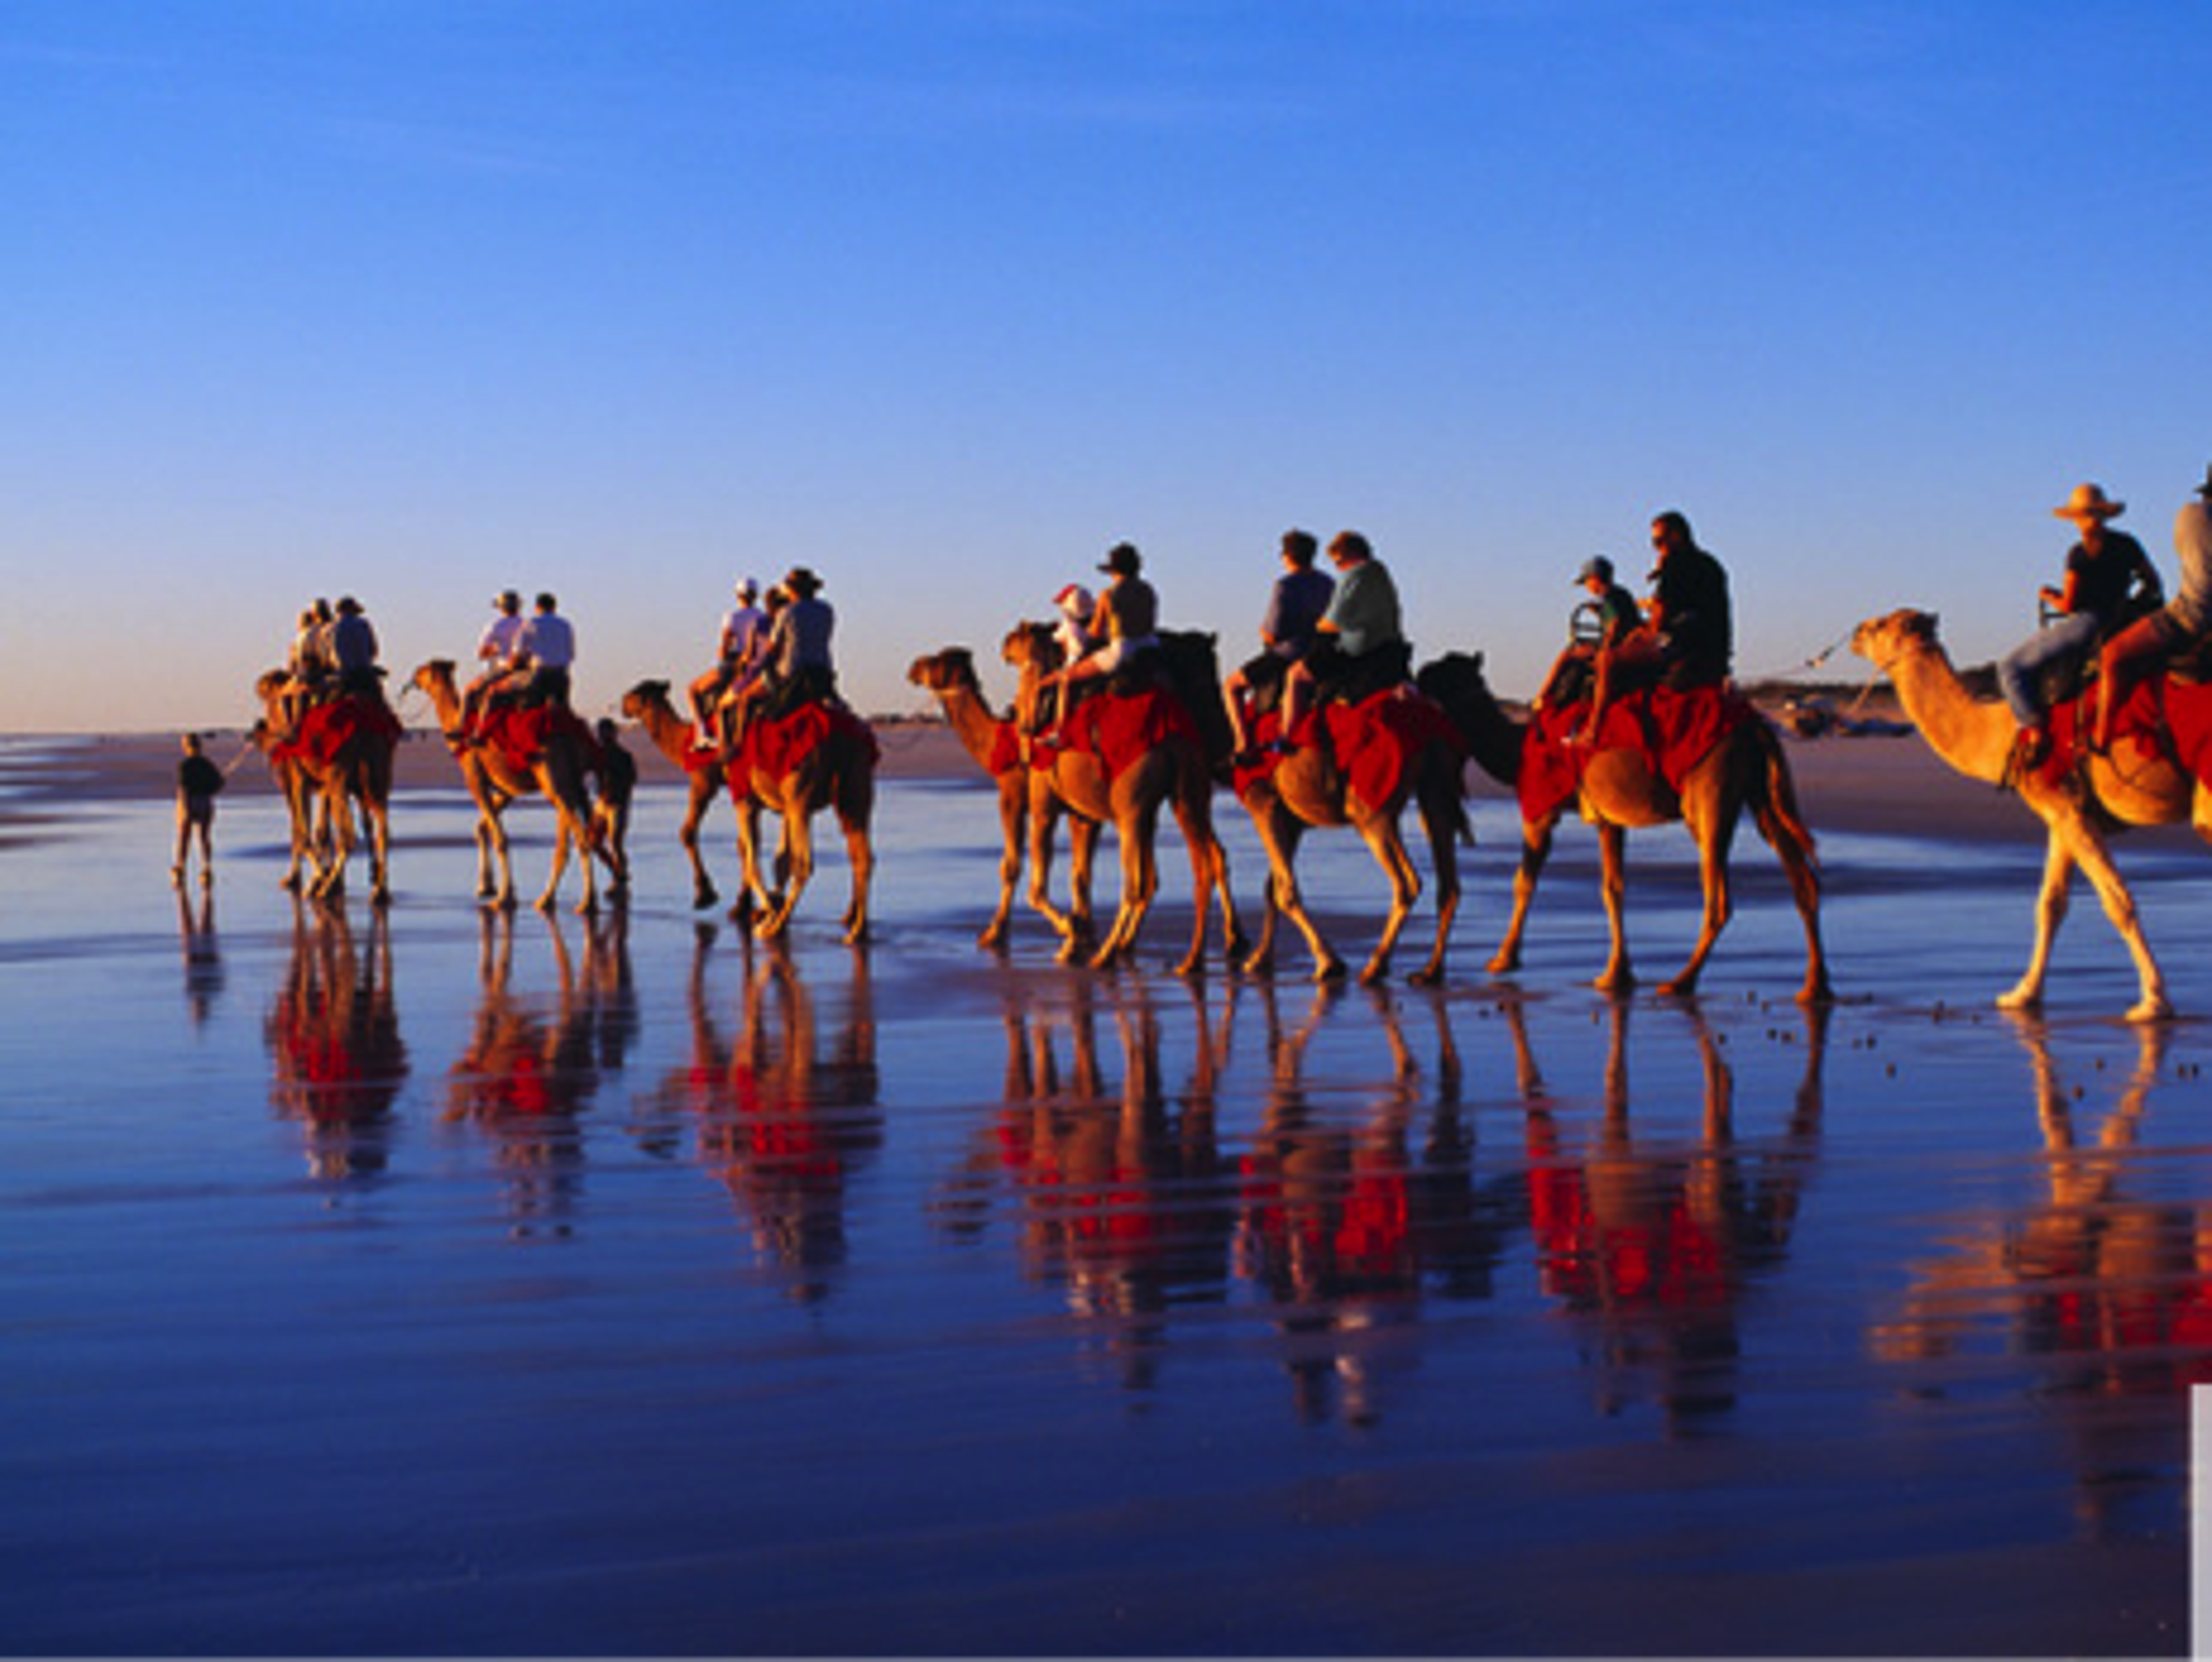 Watch the sunset at Cable Beach while enjoying a camel